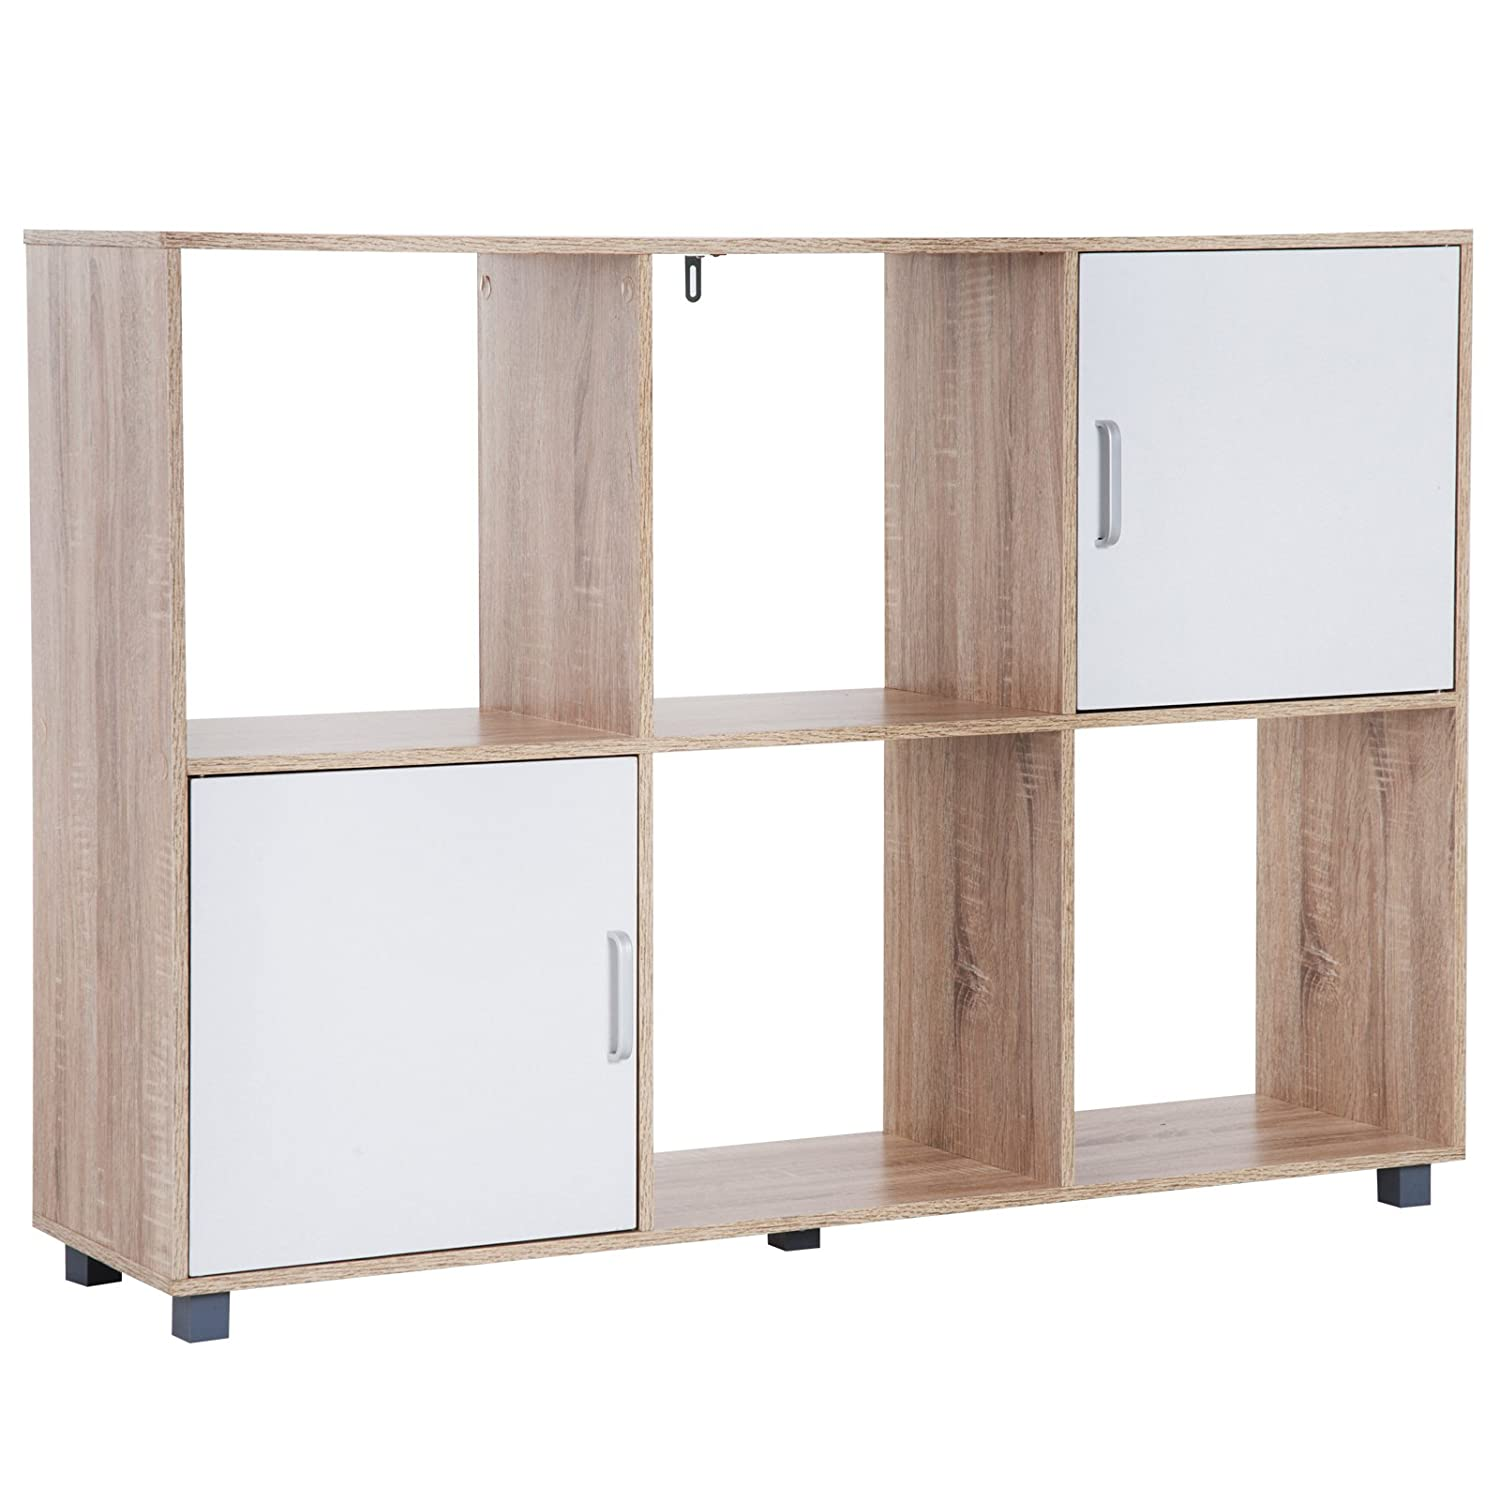 HOMCOM Wooden 6 Cube Storage Cabinet Unit with 2 Doors Bookcase Shelves Organiser Rack Display - Oak,White Sold by MHSTAR